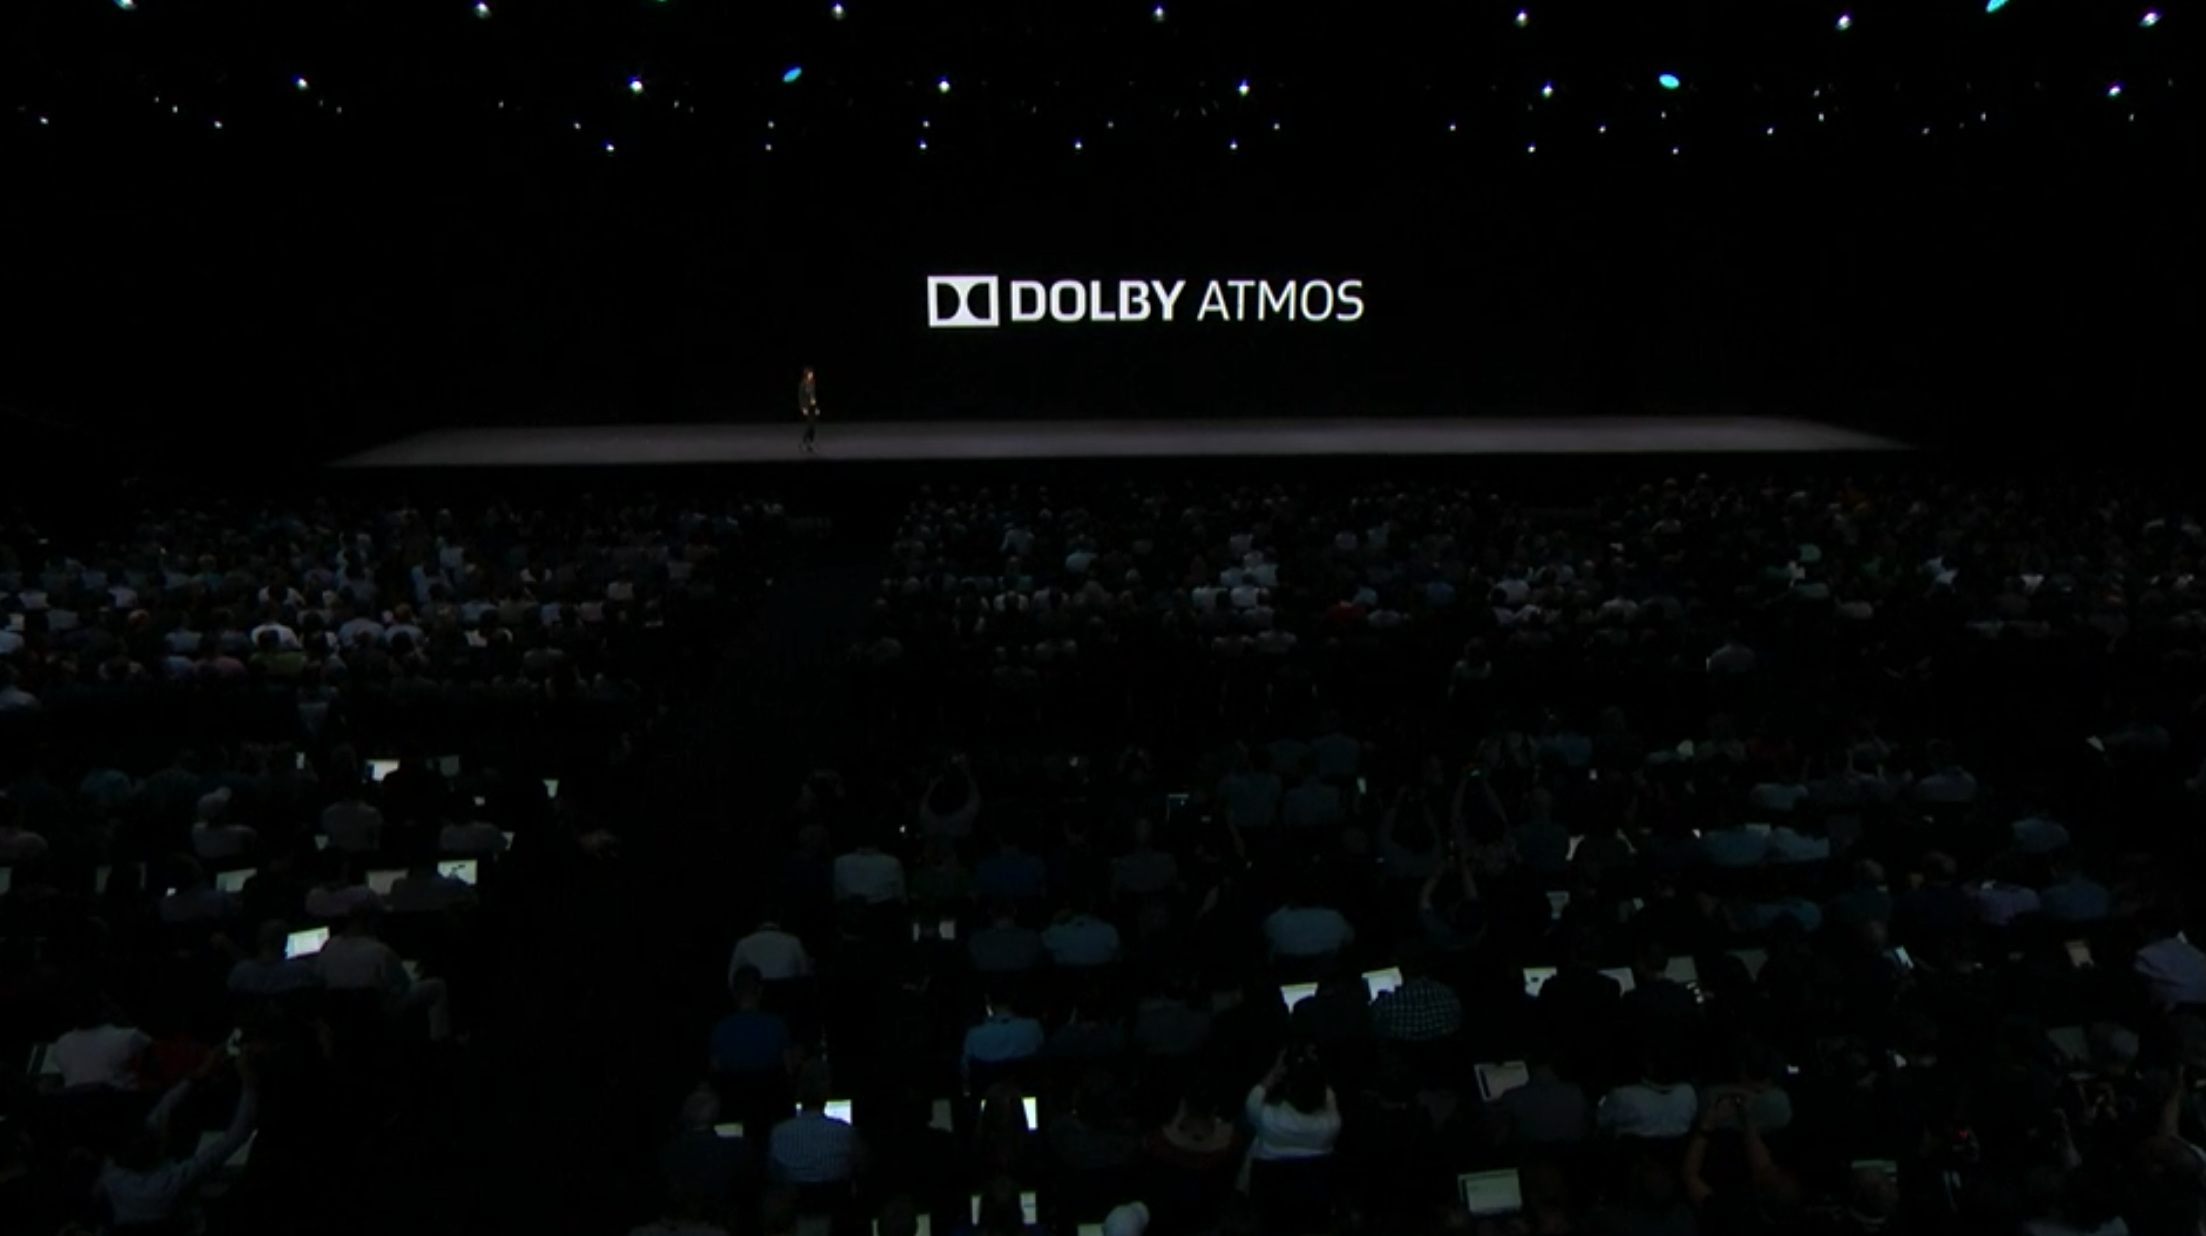 Apple TV 4K is now the only streaming device supporting Dolby Vision and Dolby Atmos